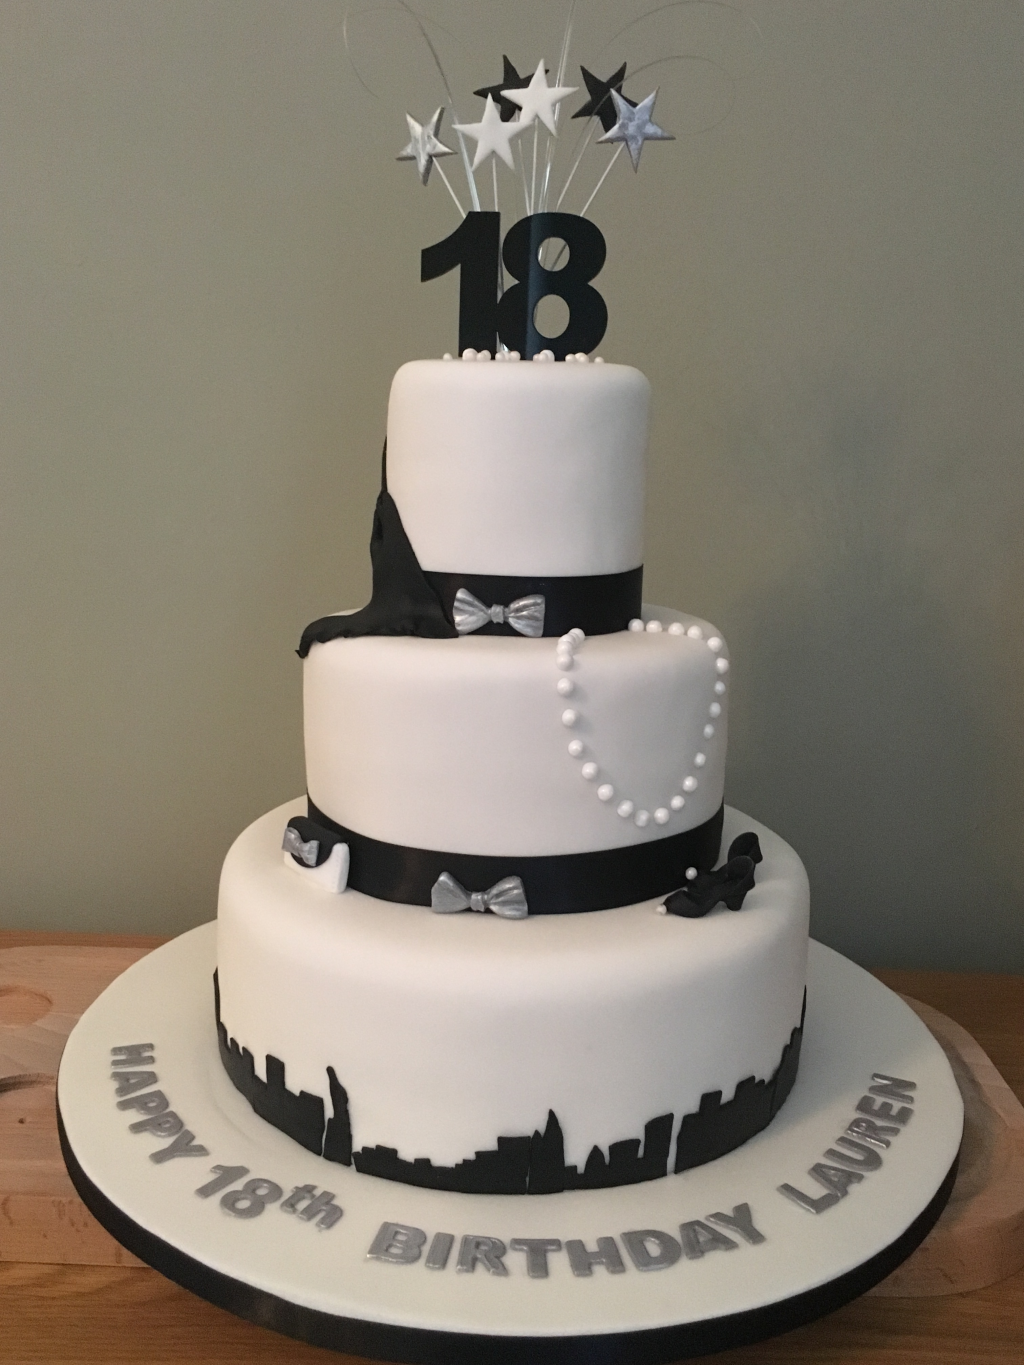 Cityscape-dresses-and-jewellery-18th-birthday-cake